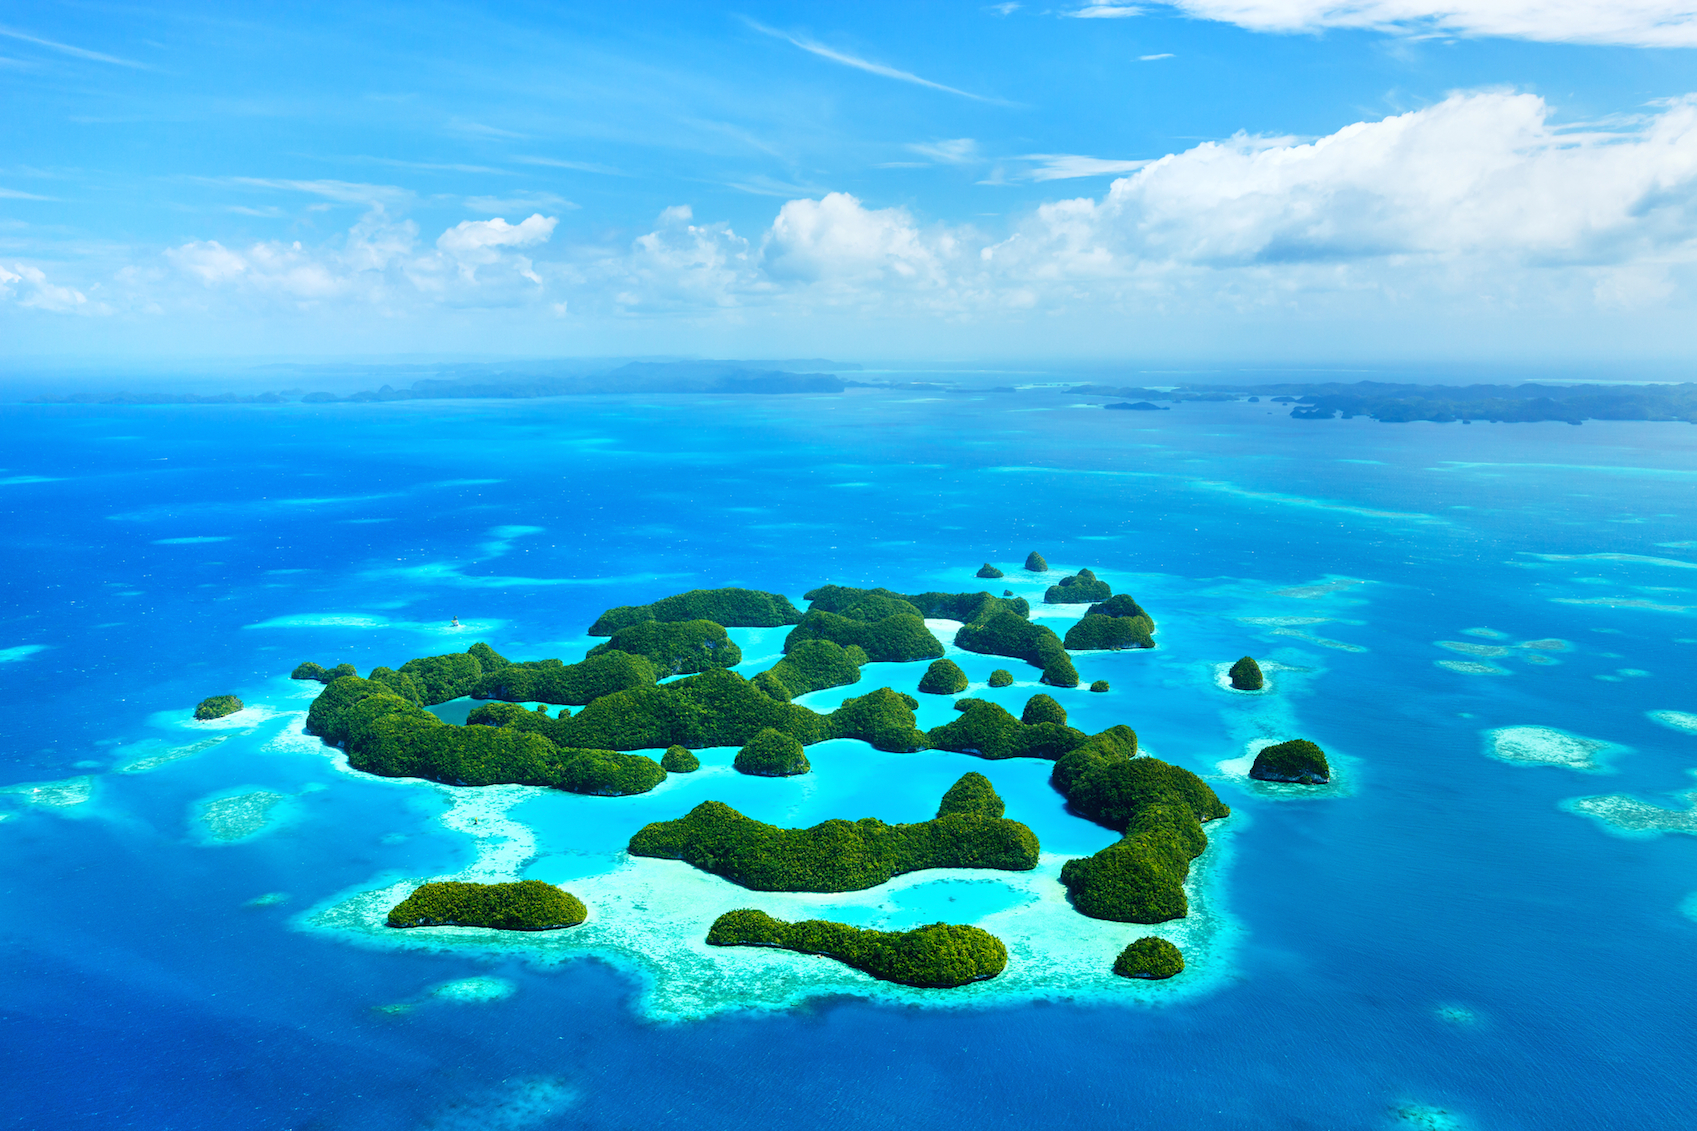 palau-travel-photosv4